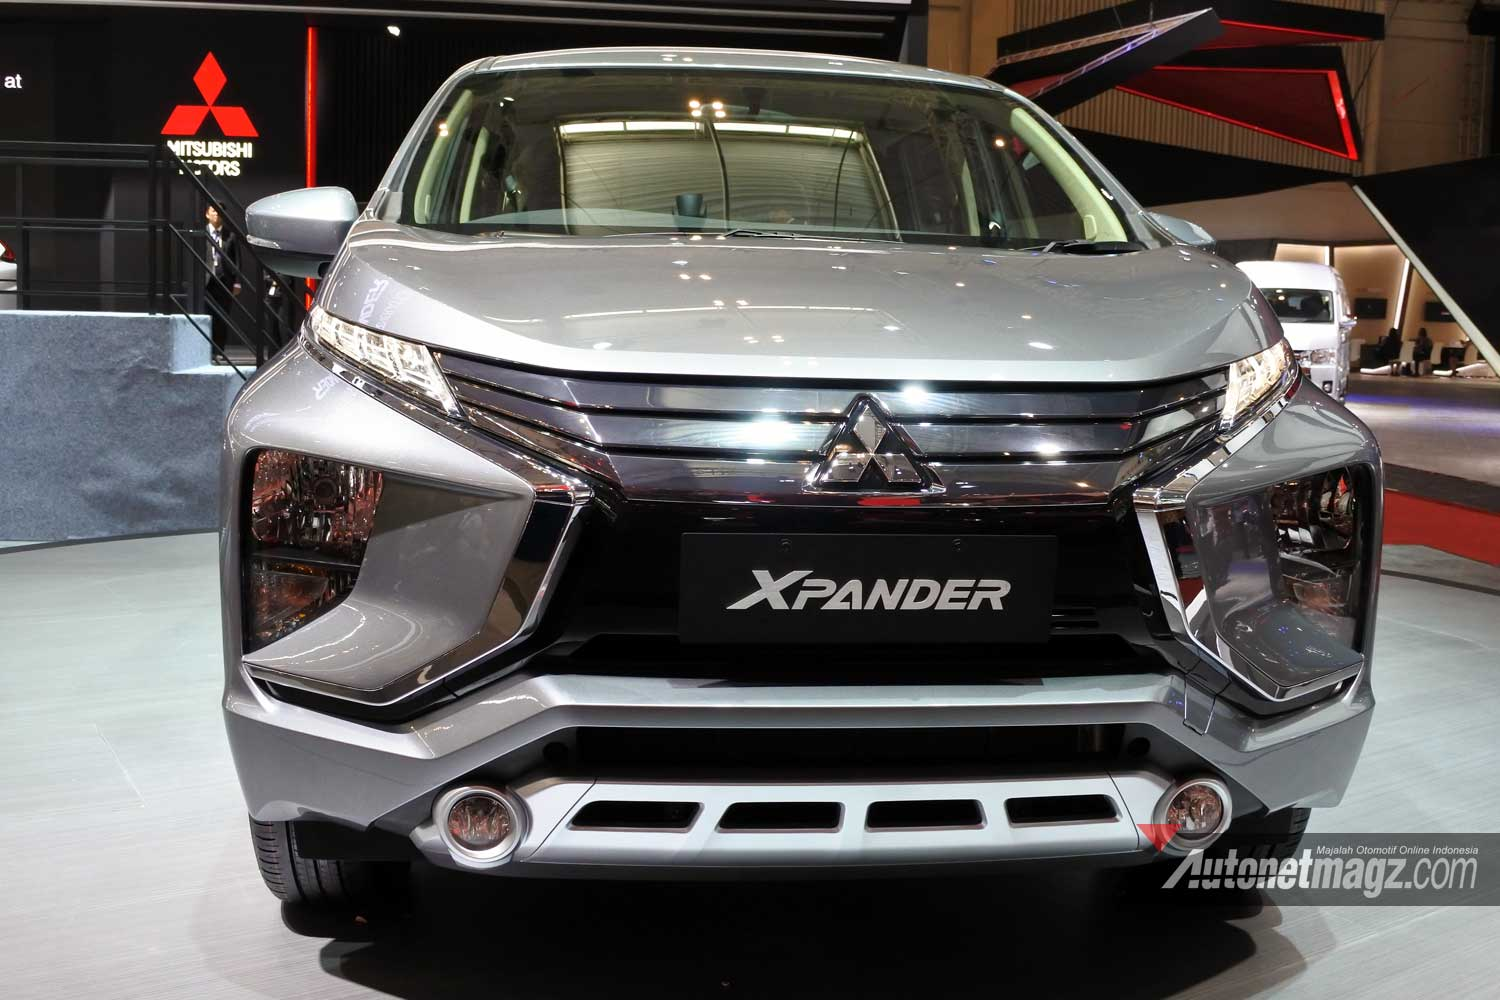 2018 Mitsubishi Pajero Sport - New Car Release Date and Review 2018 | Amanda Felicia